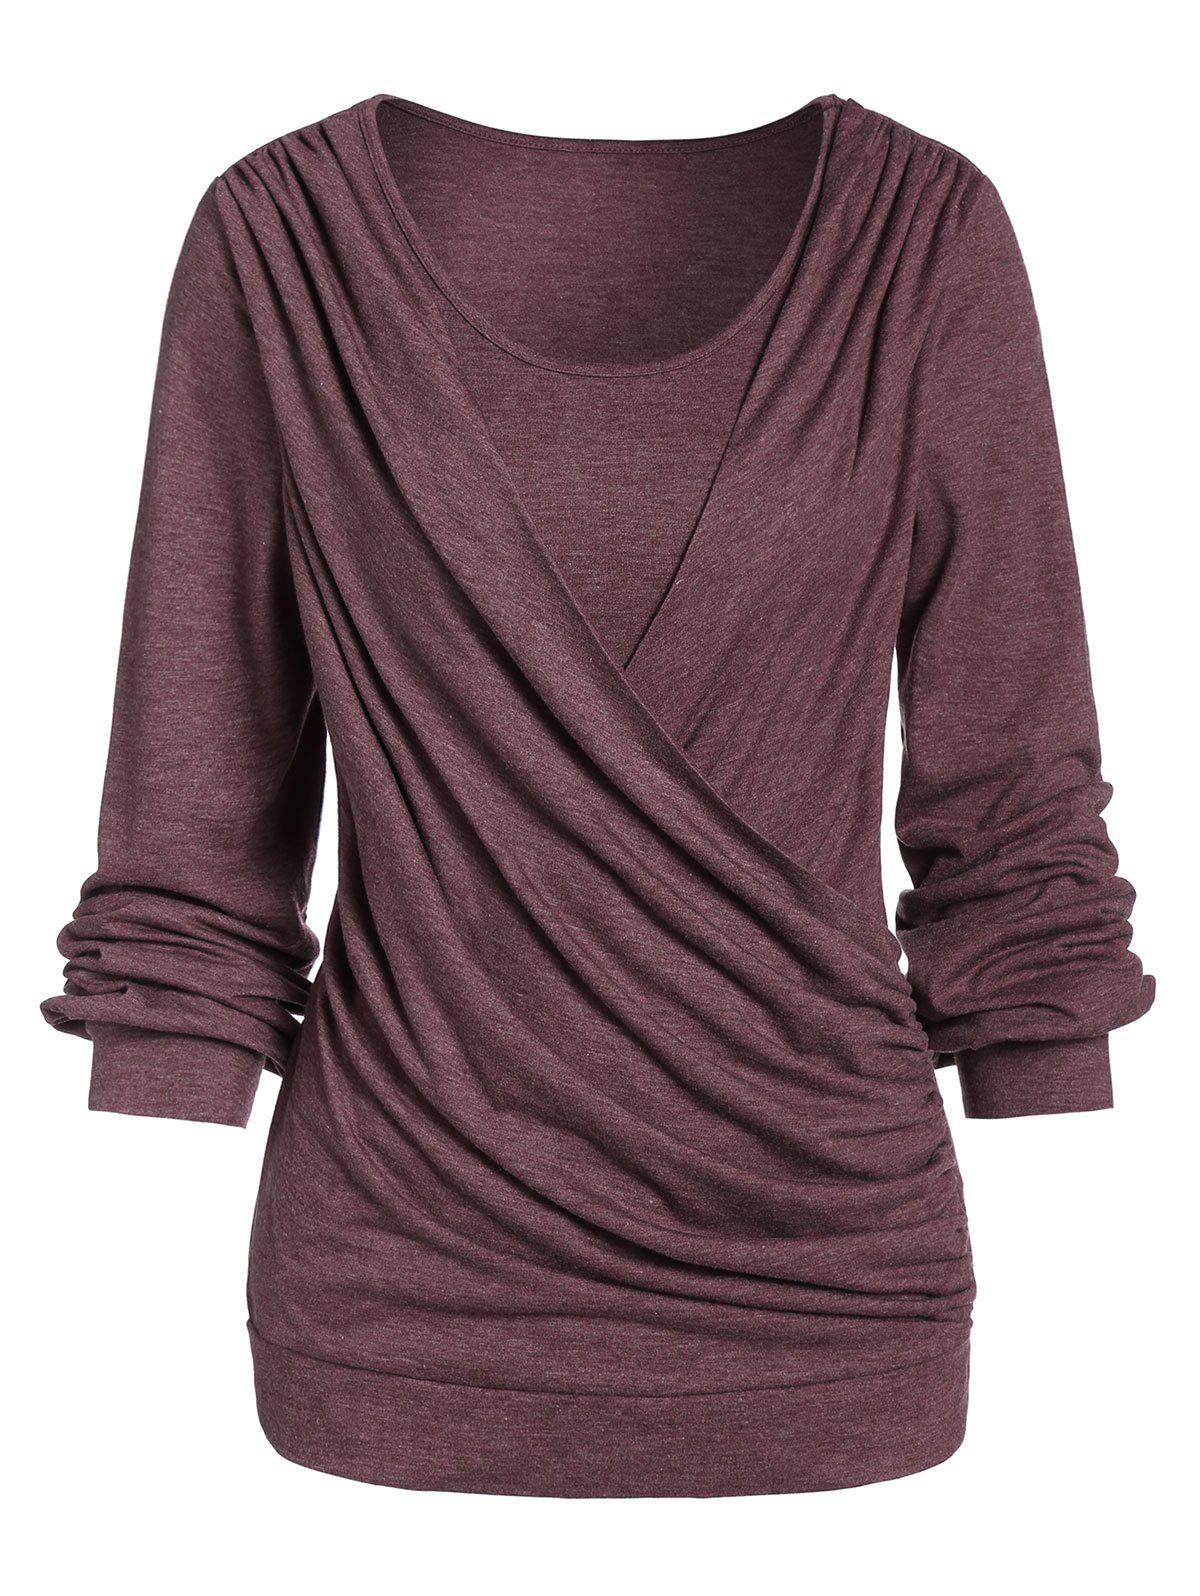 Long Sleeve Round Collar Marled T Shirt - DEEP COFFEE XL